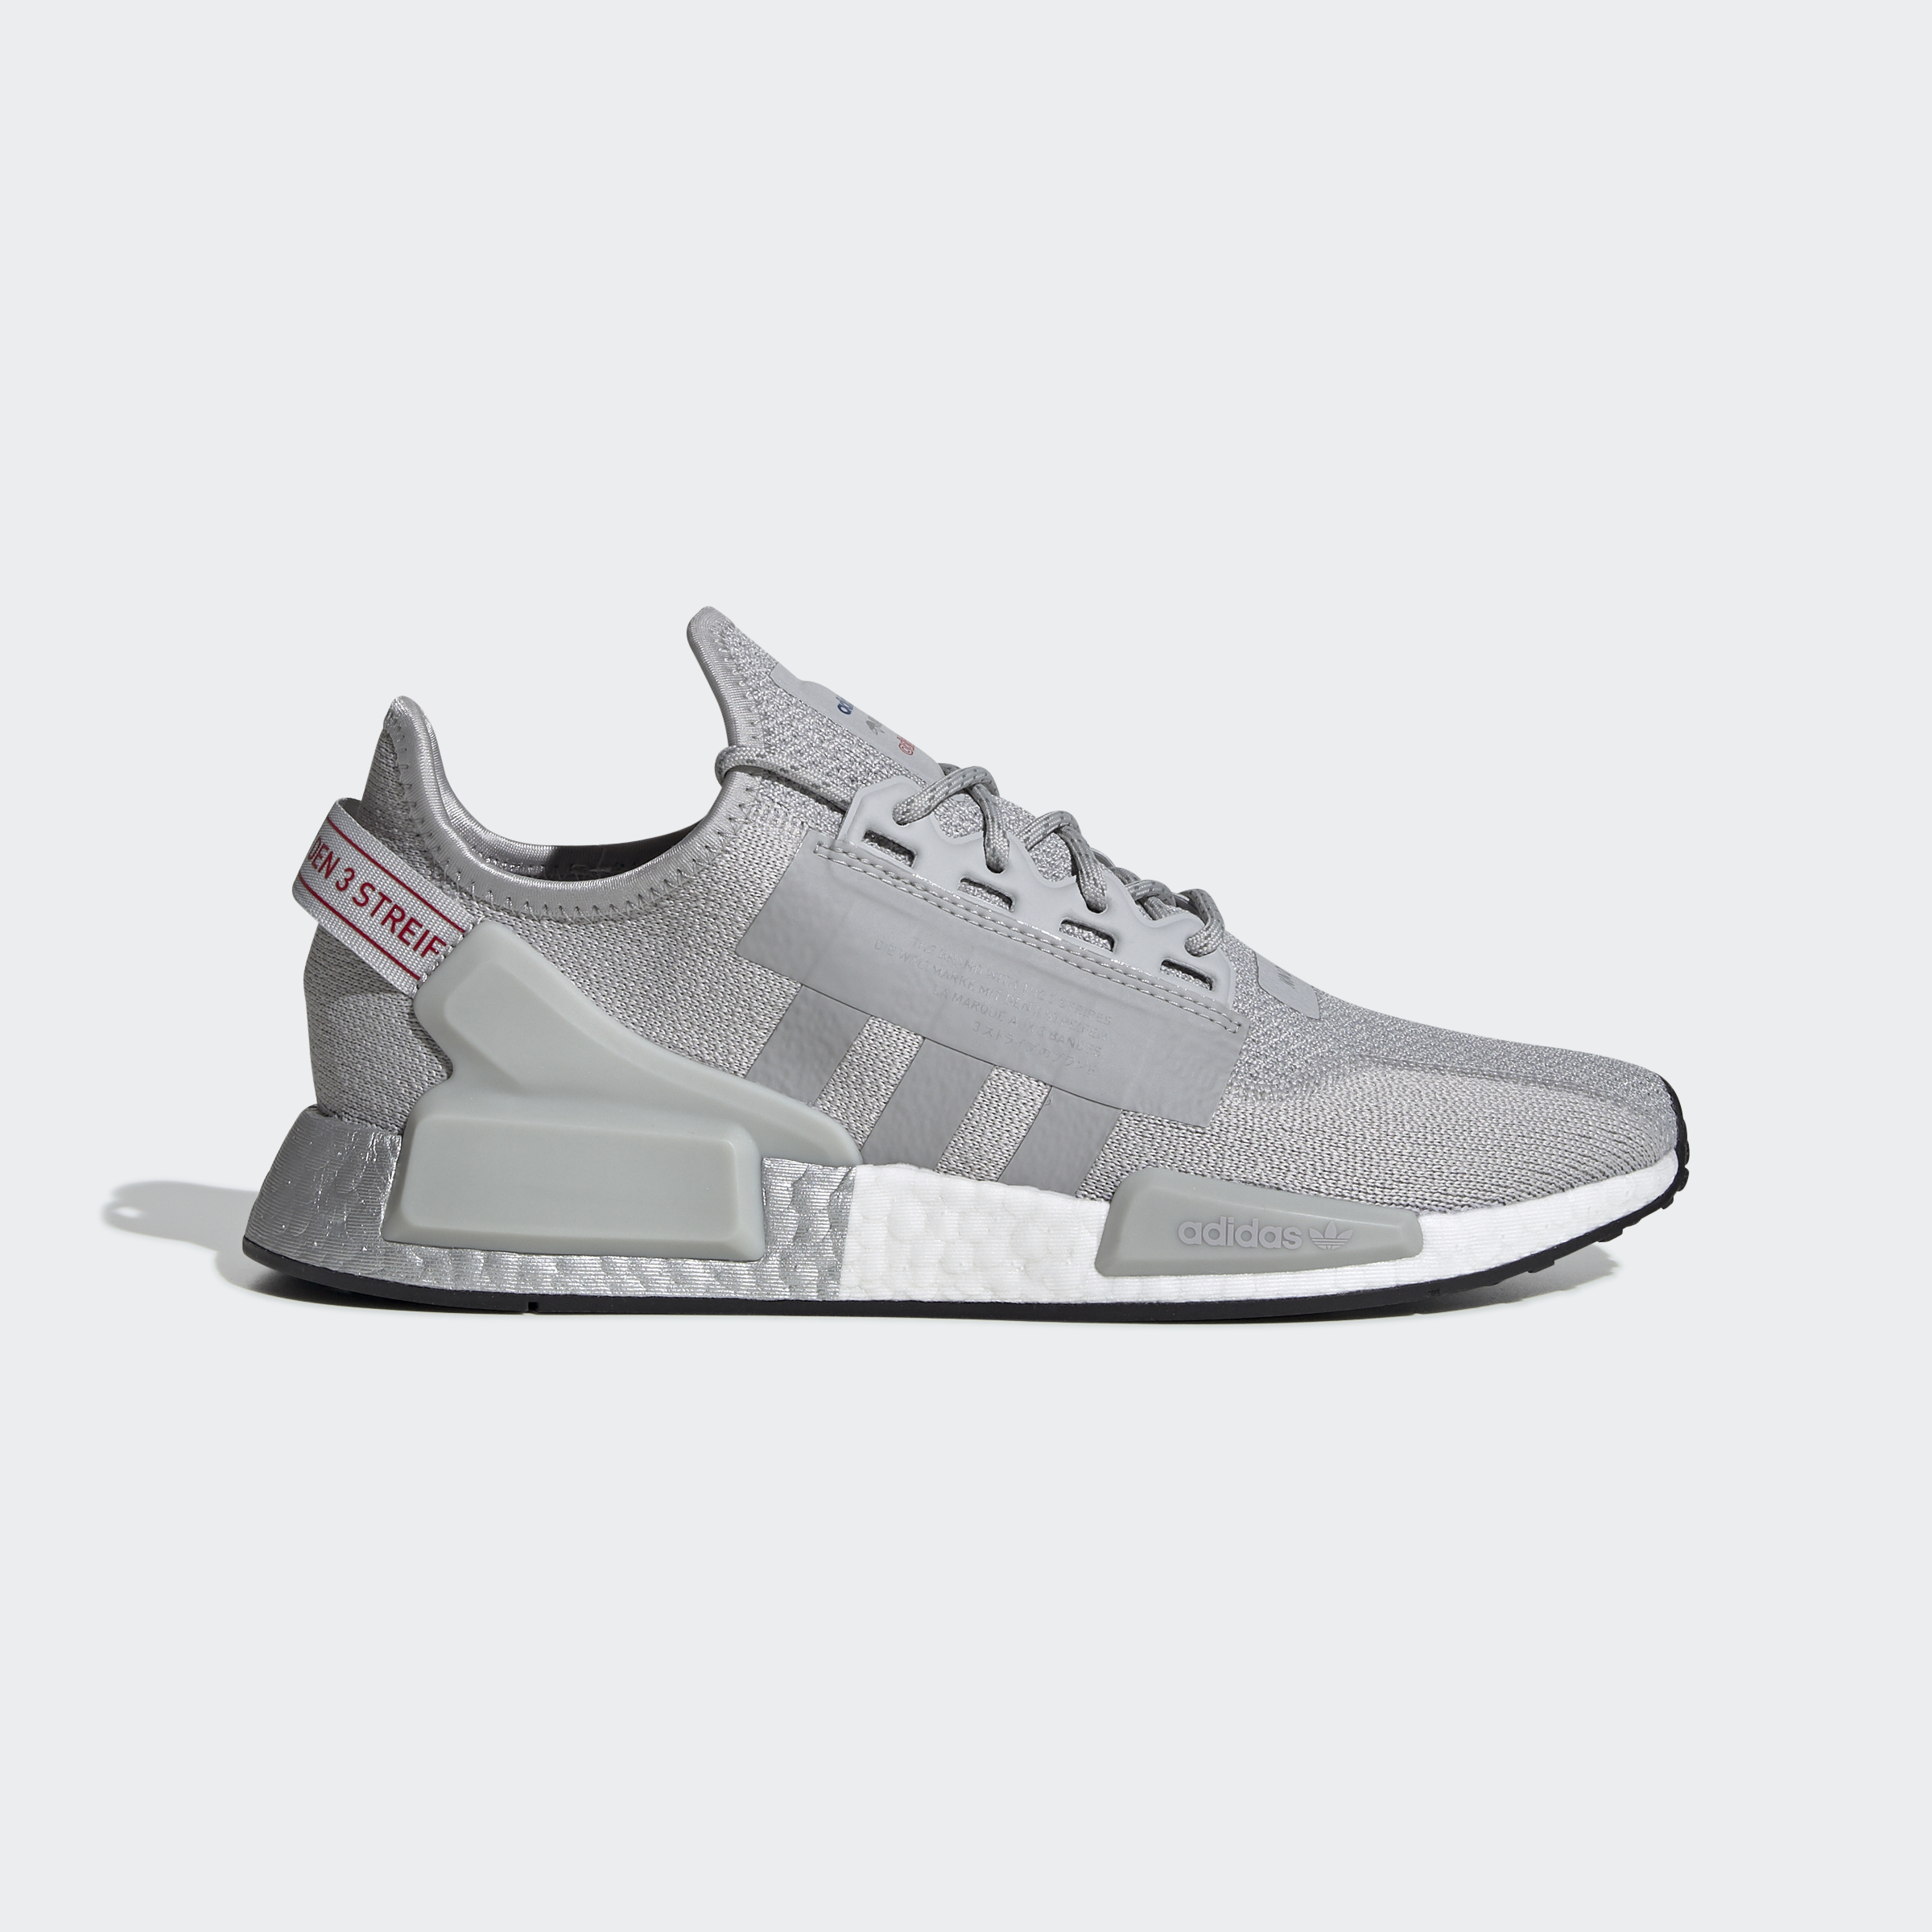 adidas-NMD-R1-V2-Shoes-Athletic-amp-Sneakers thumbnail 11